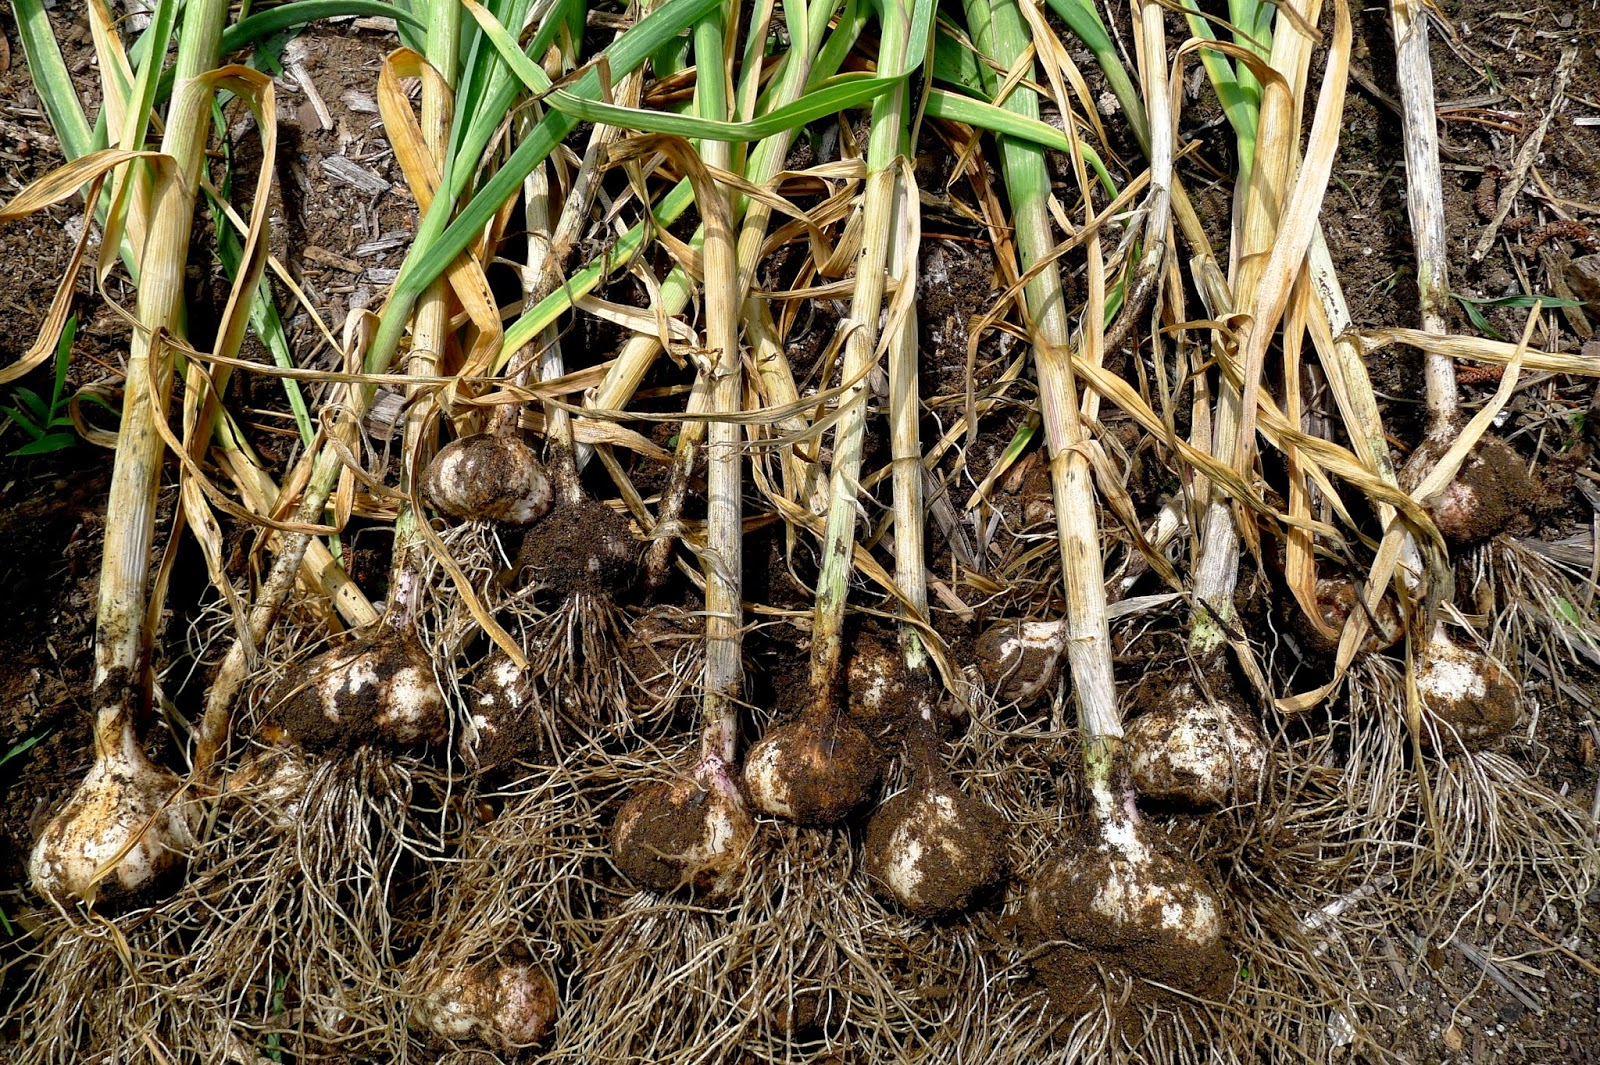 Curing Garlic, urban farming